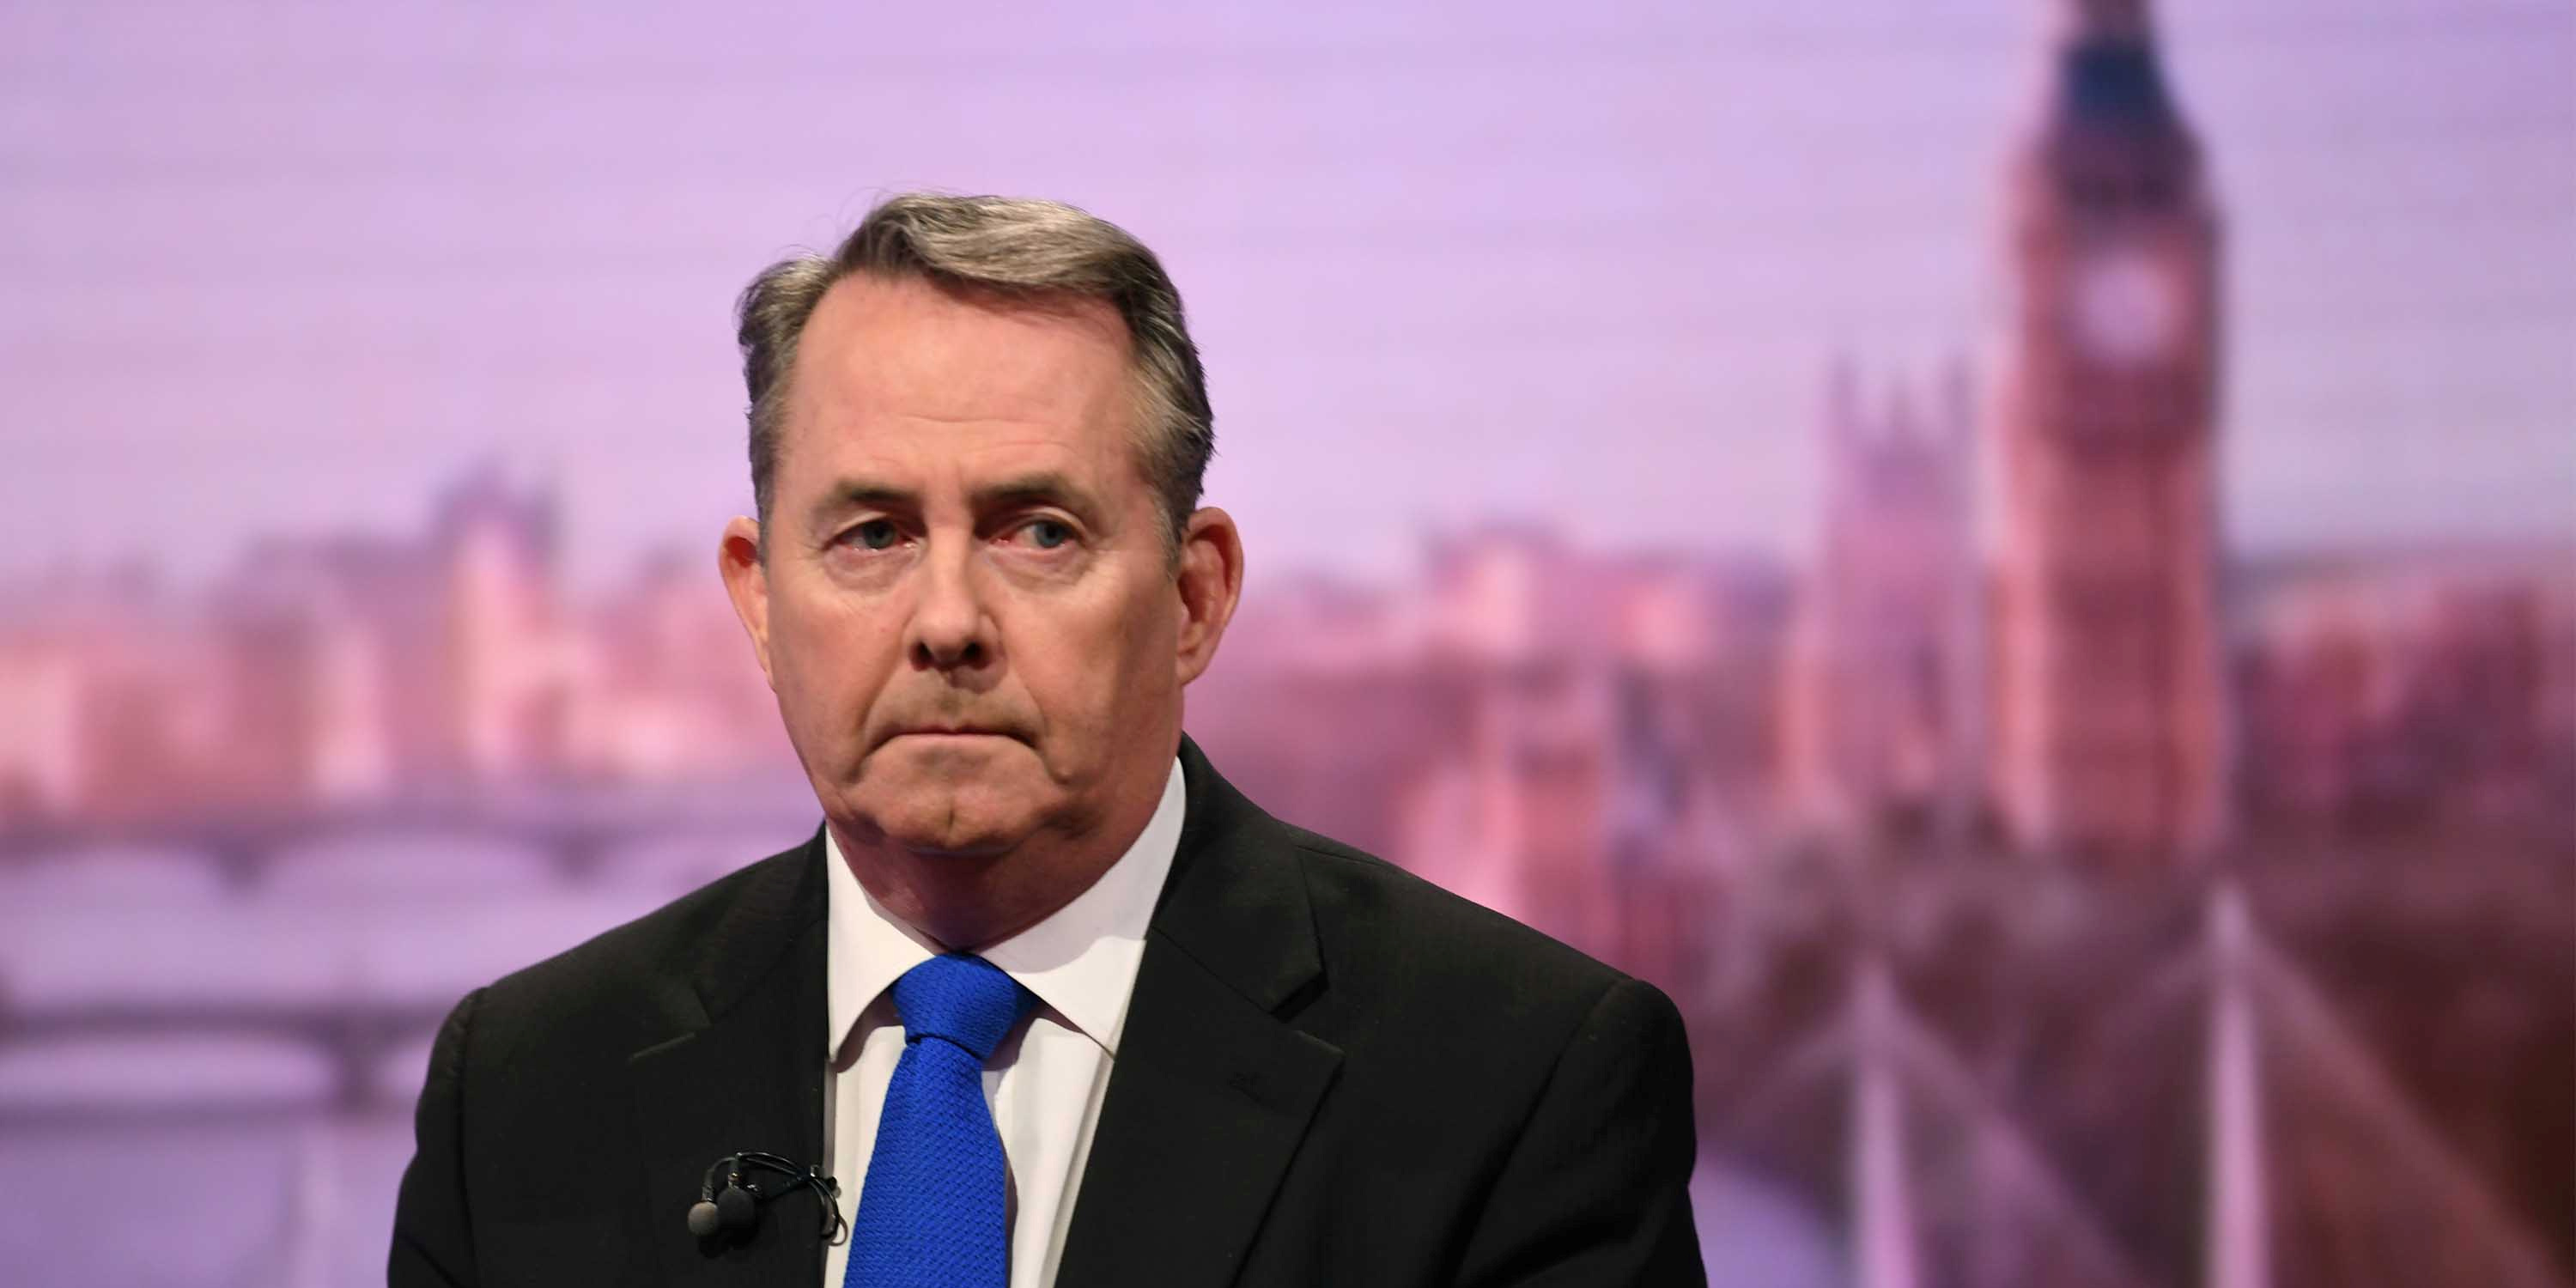 liam-fox-brexit-ministre-du-commerce